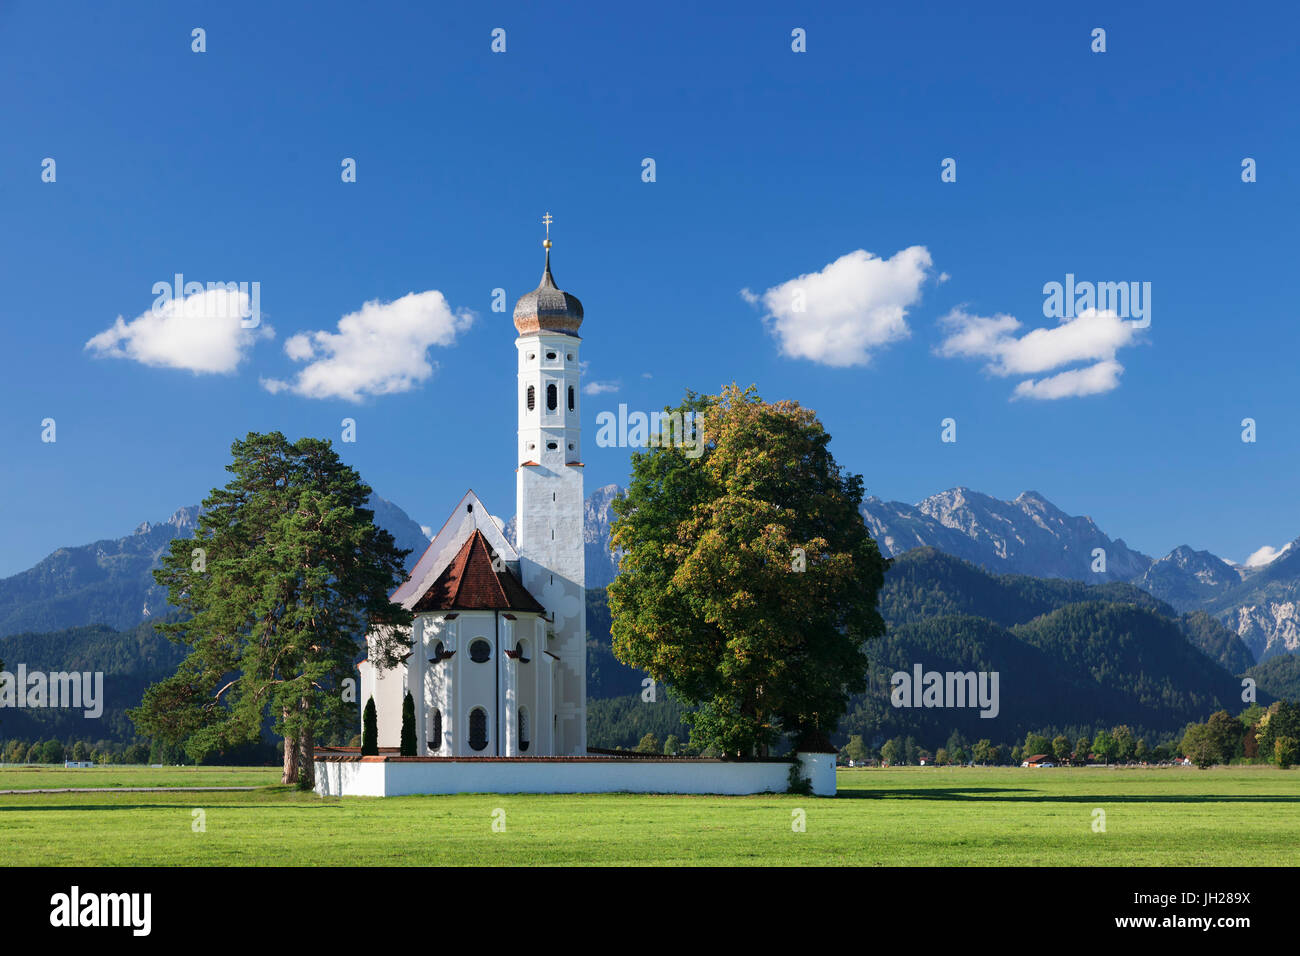 Pilgrim church St. Coloman, Schwangau, Allgau, Allgau Alps, Bavaria, Germany, Europe - Stock Image